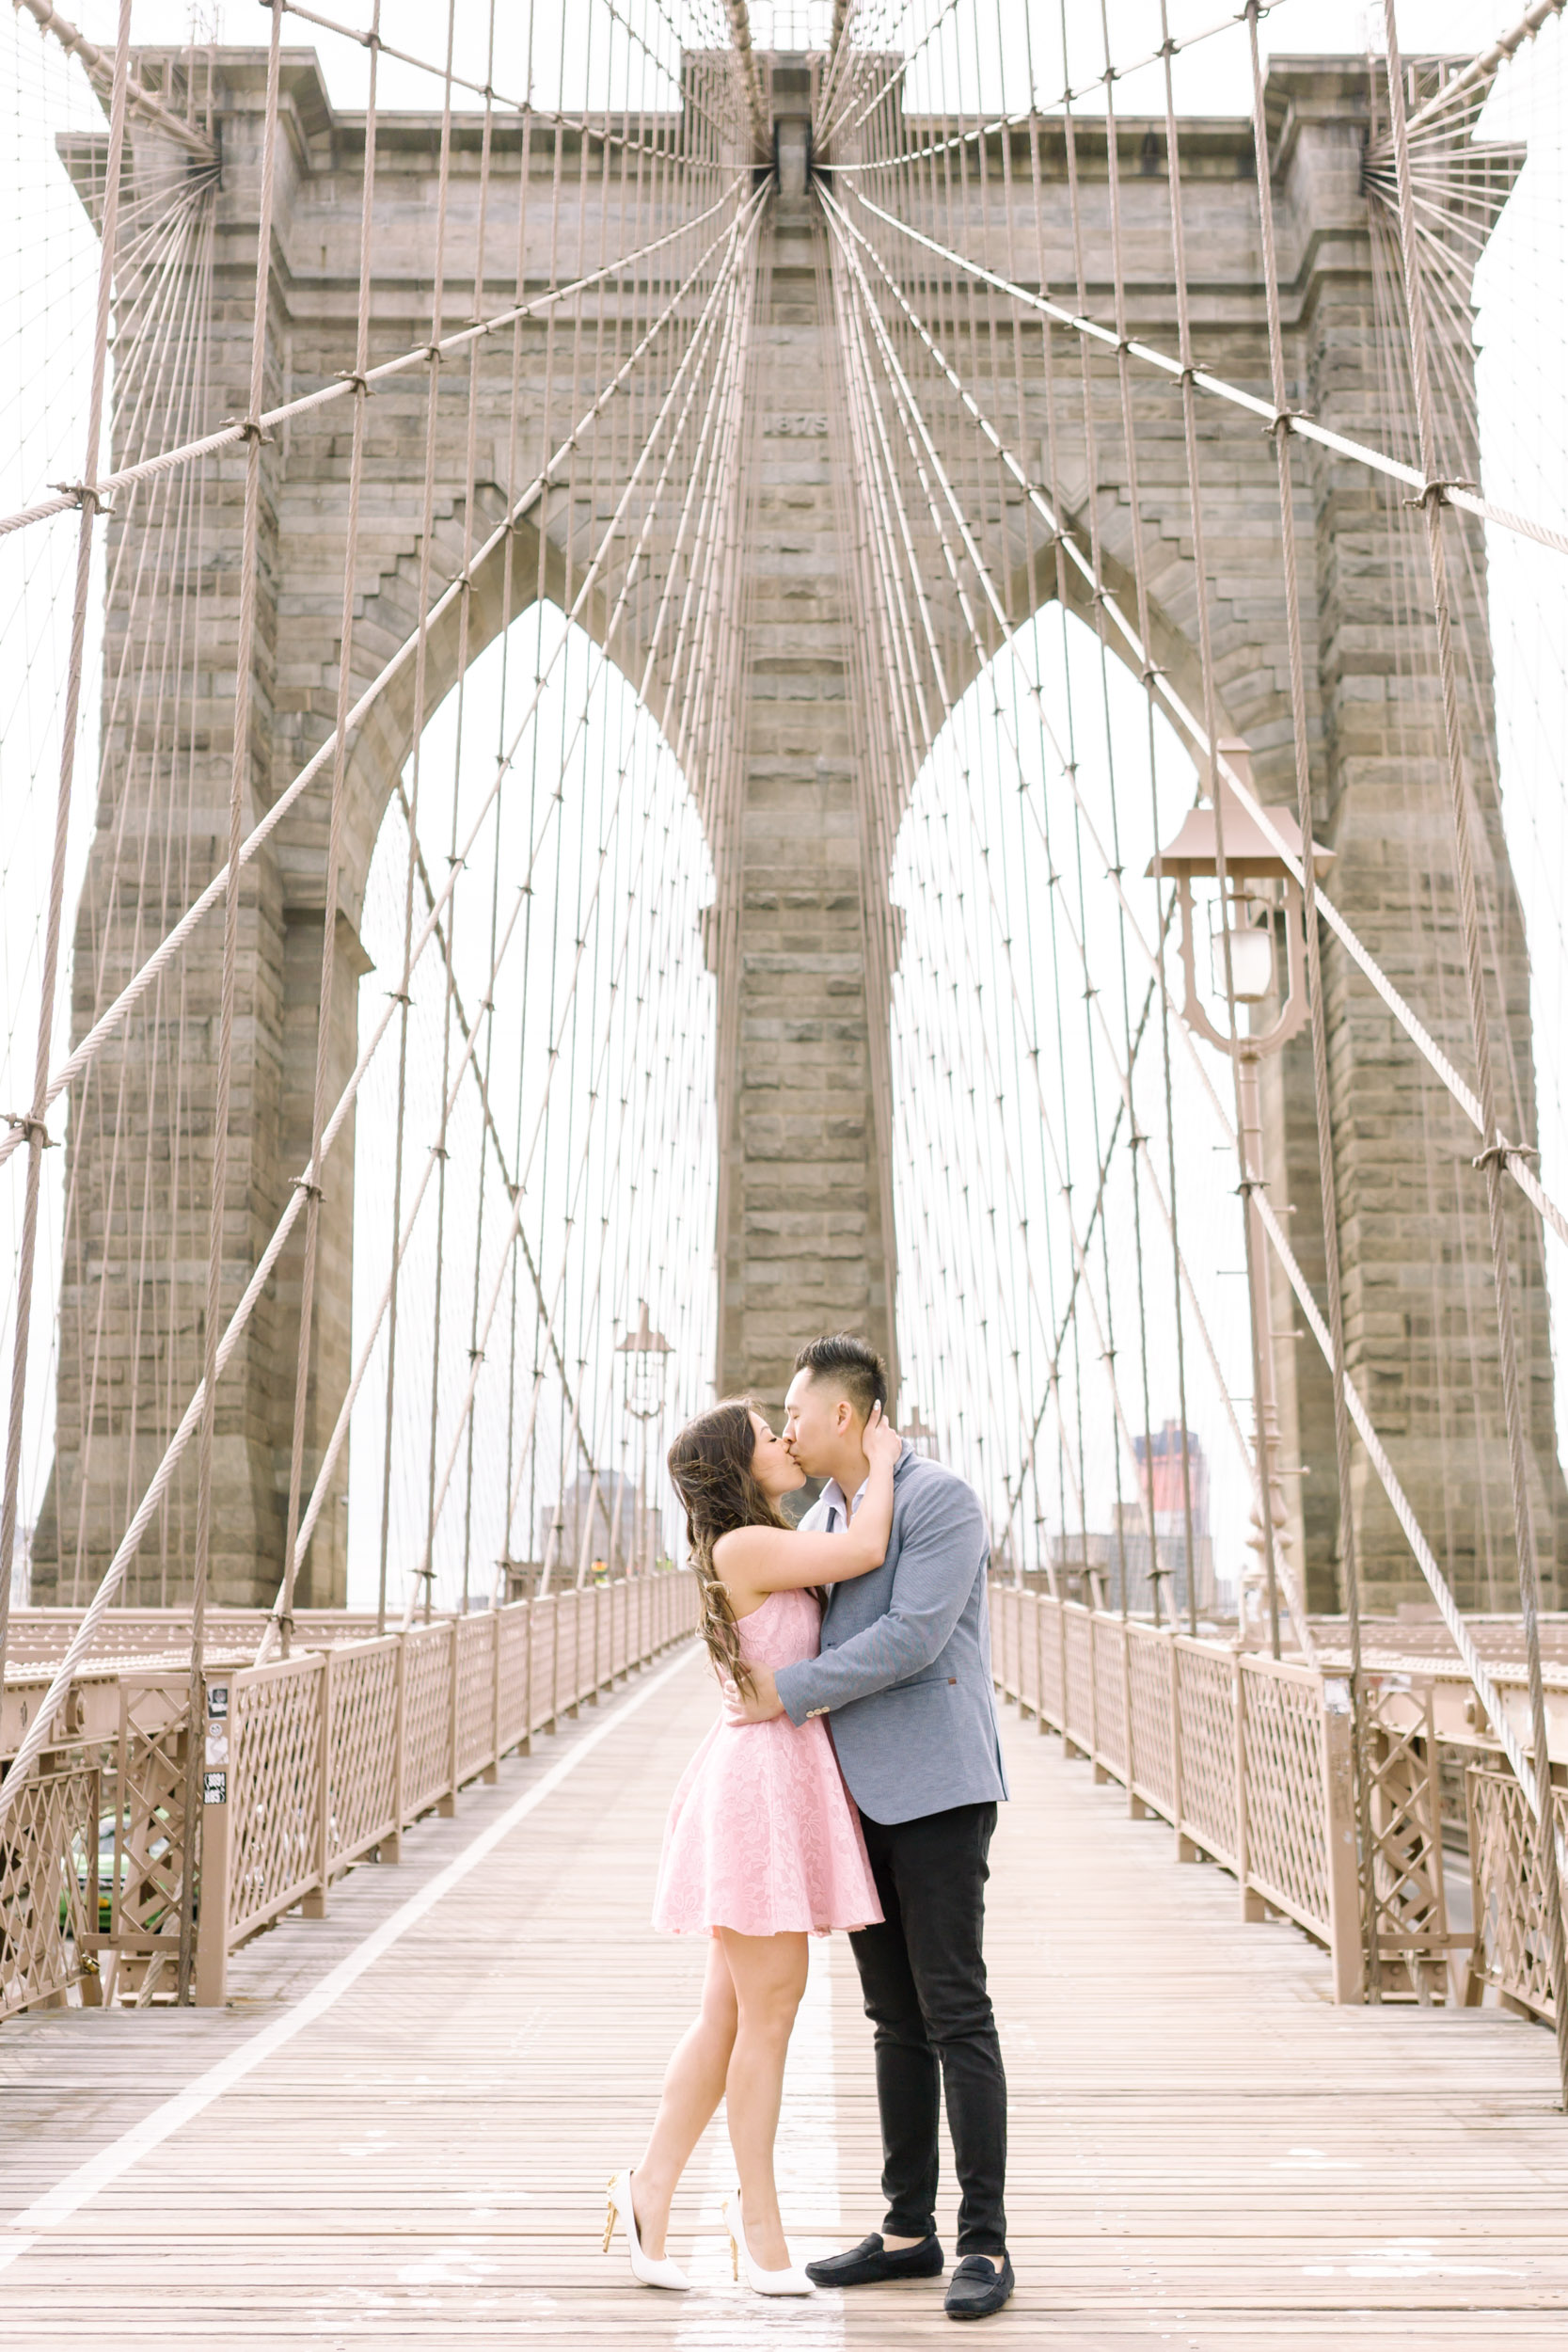 A couple at the Brooklyn Bridge in New York City for their engagement photos